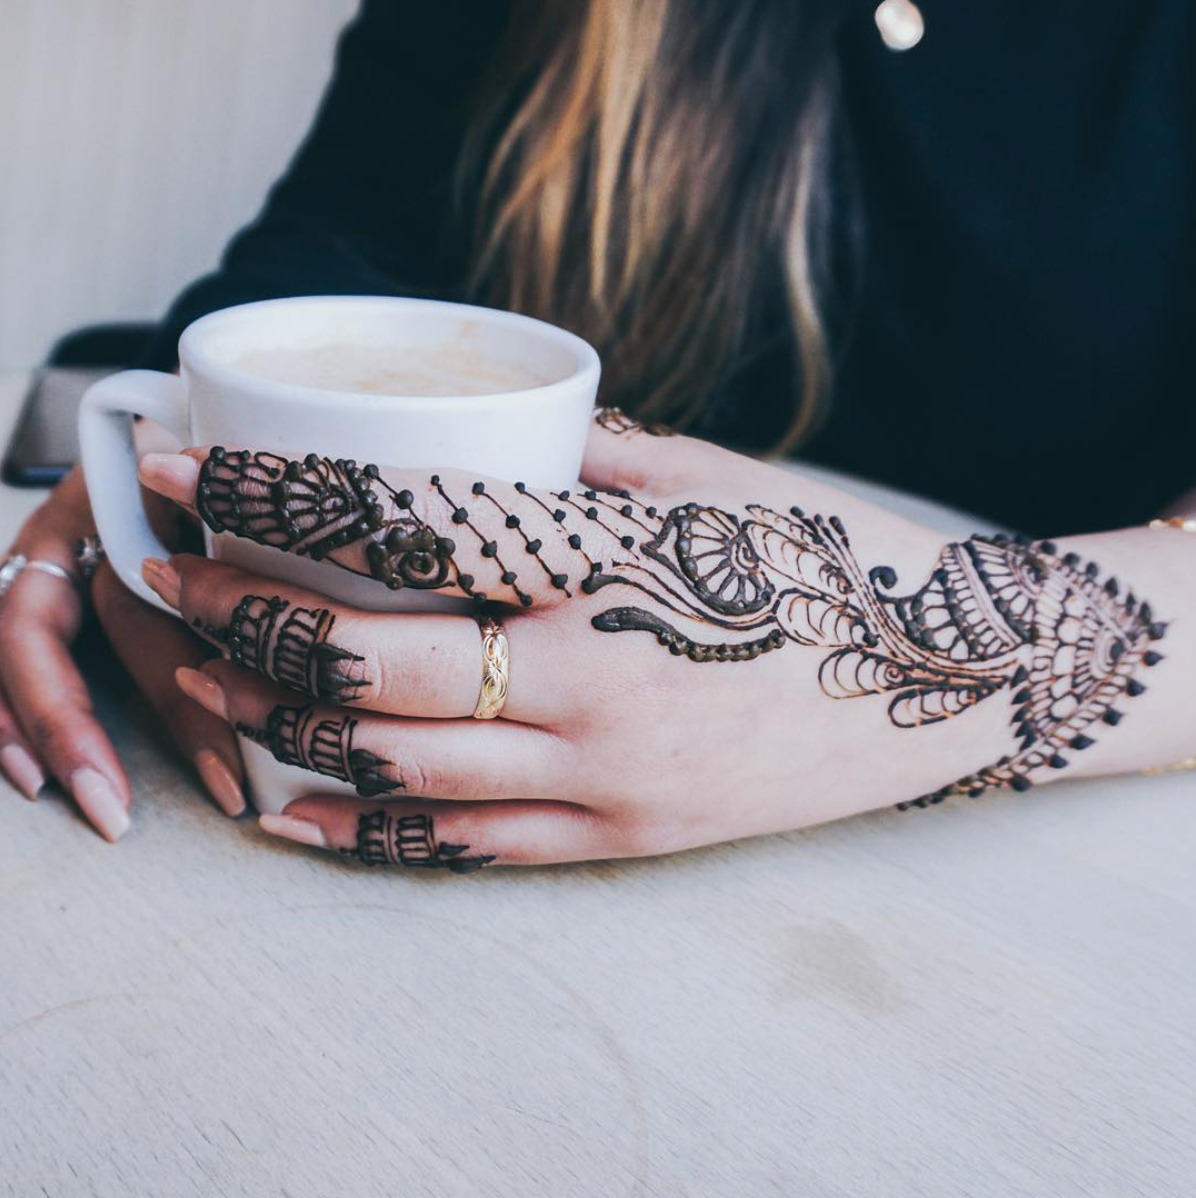 COFFEE AND HENNA  INTERVIEW  We had the pleasure of being meeting the lovely Zainab Khan and be interviewed on her platform Coffee and Henna. You can read Part 1 of the interview with our co-founder Leyya on the link below or on the @coffeeandhenna Instagram page.